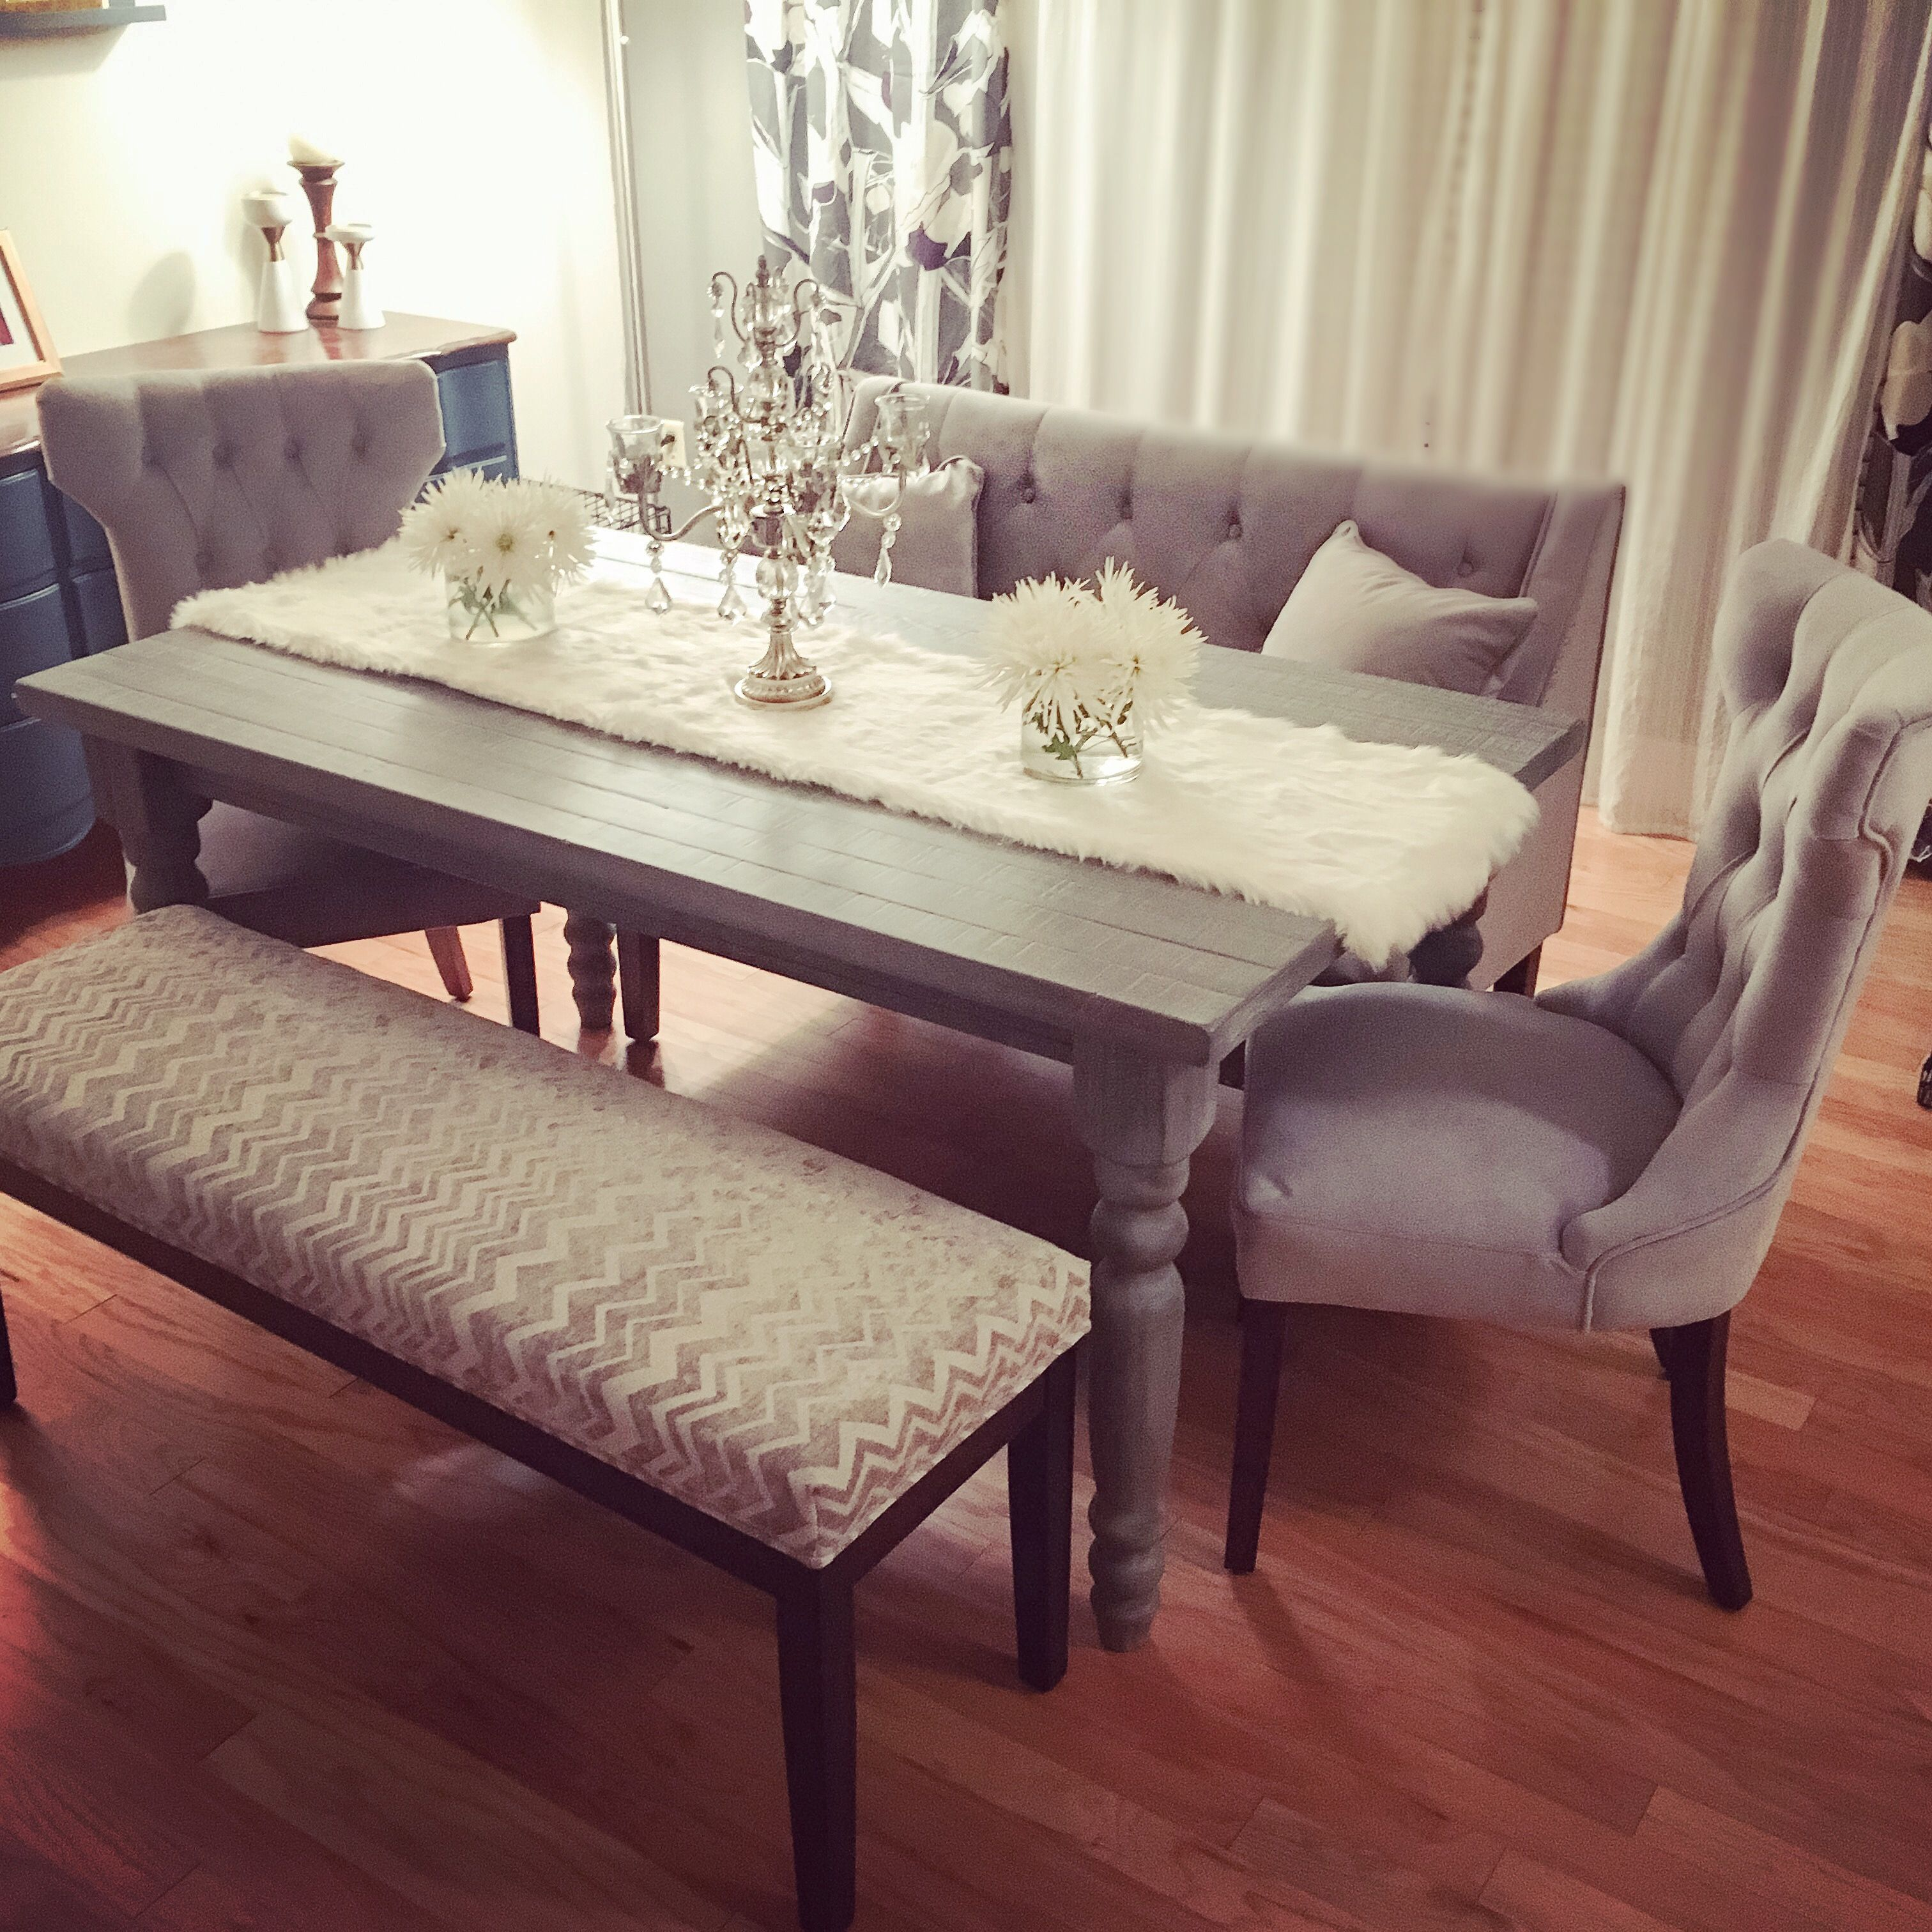 kitchen table set with bench booth tables my new grey rustic chic dining tufted velvet chairs satee and chevron farmhouse style so in love